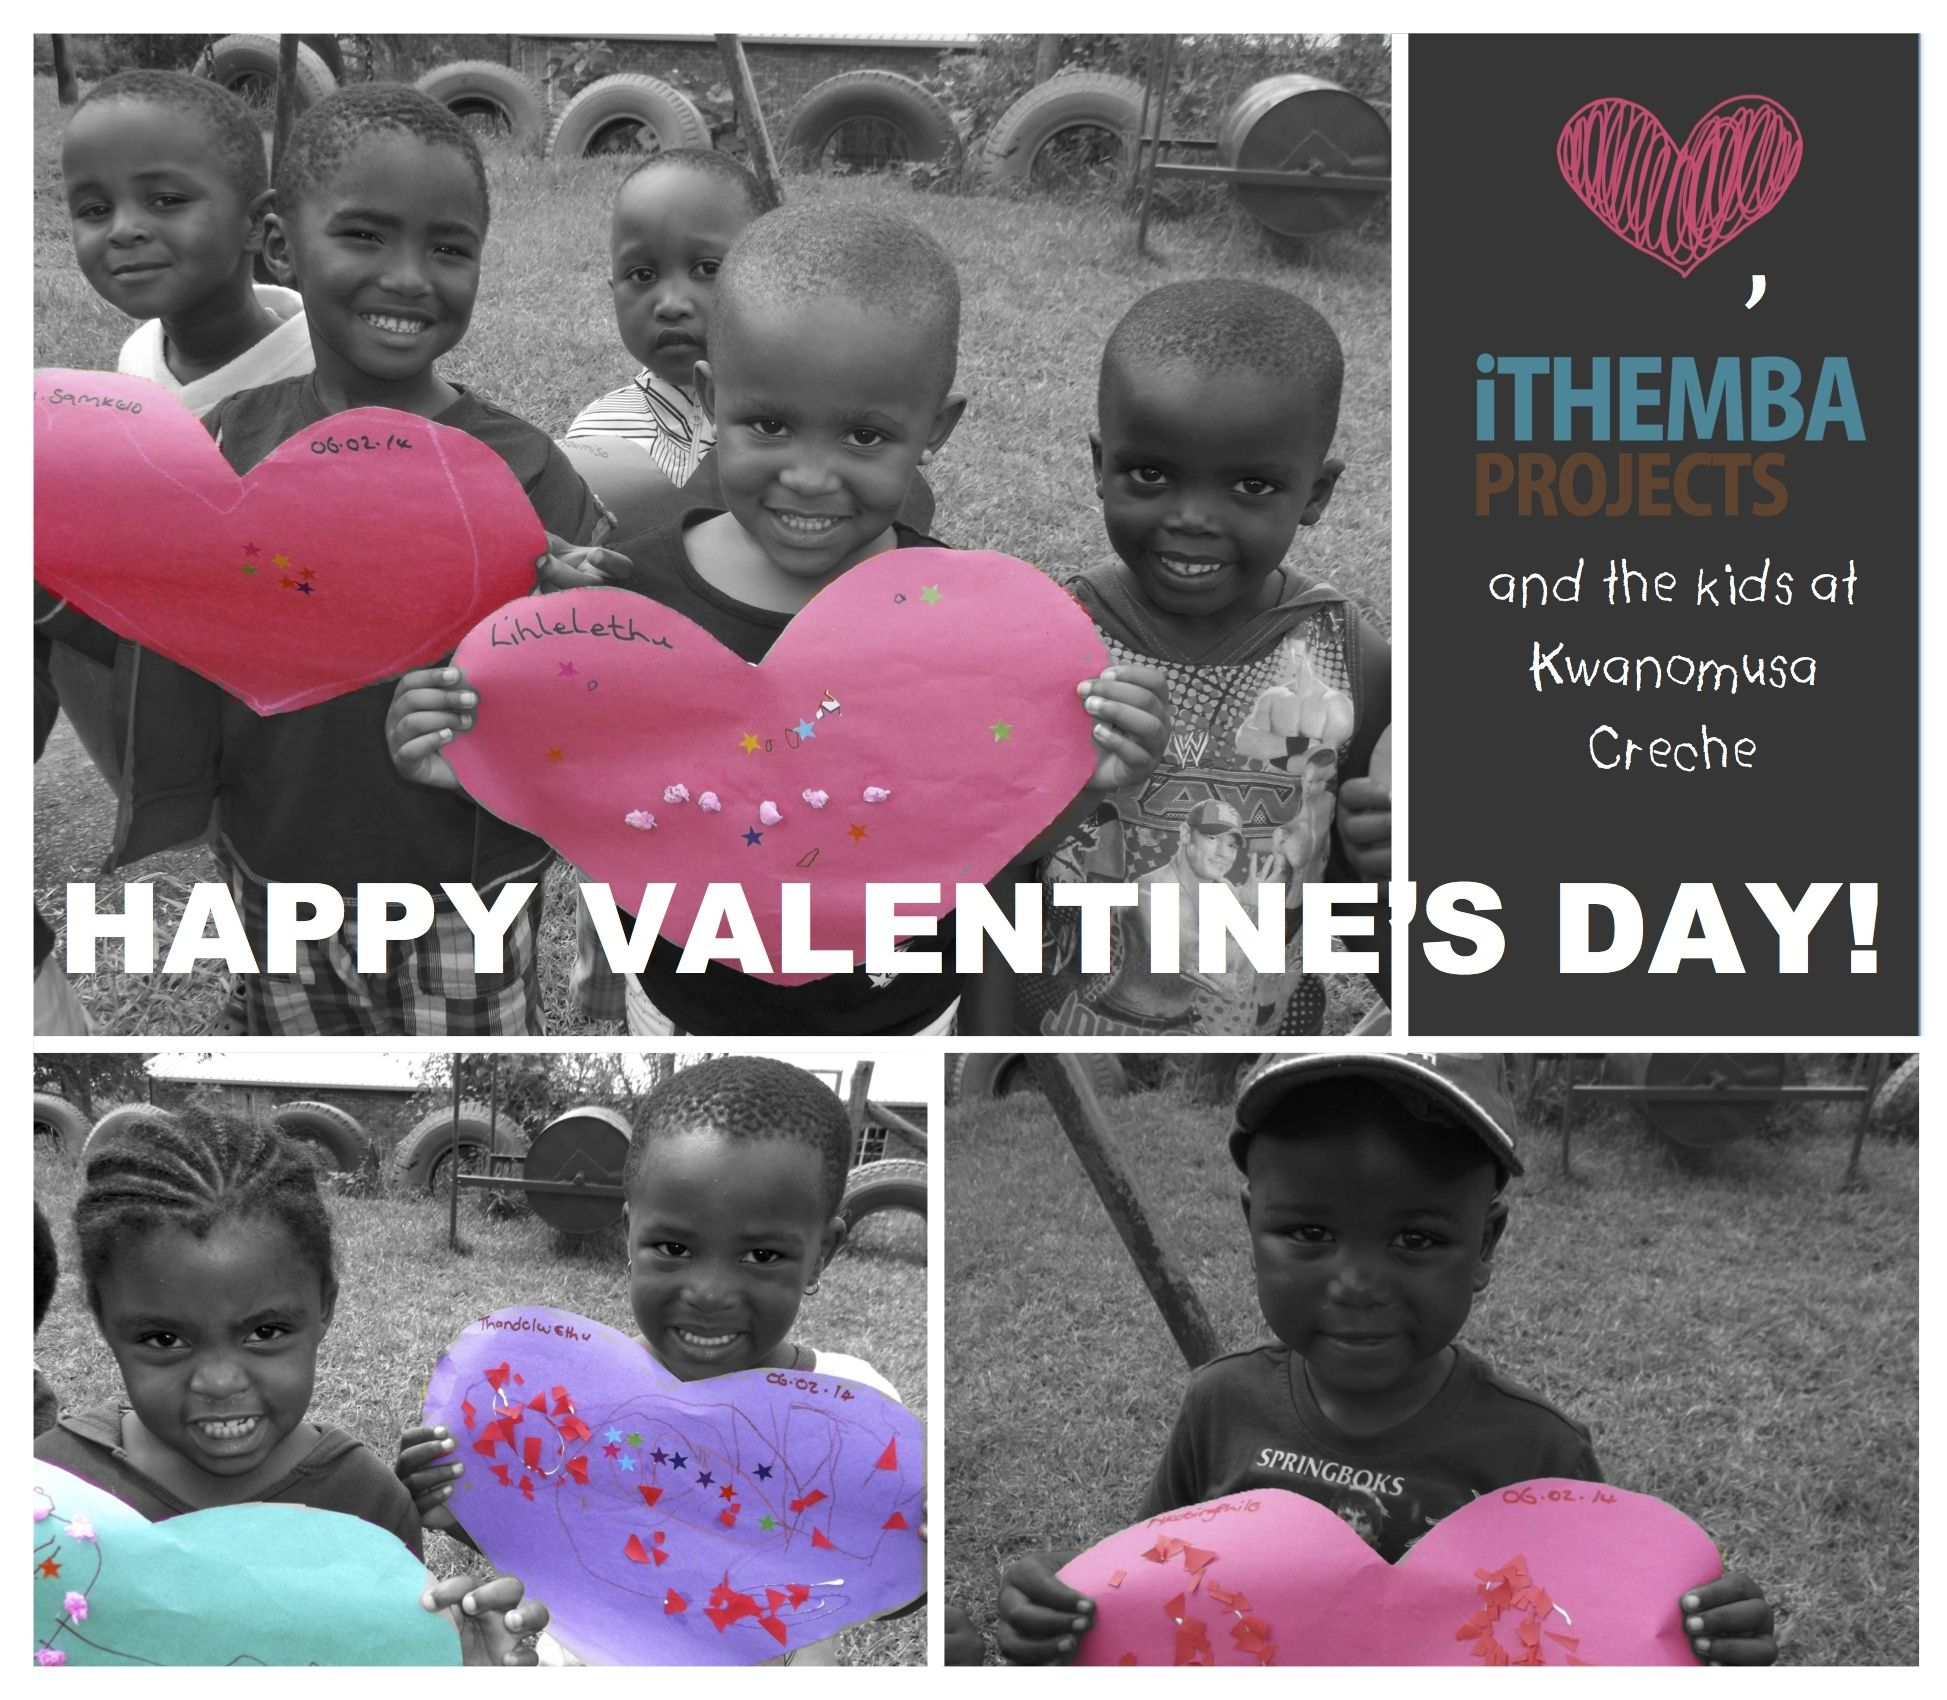 #ValentinesDay message from the kids in Sweetwaters!